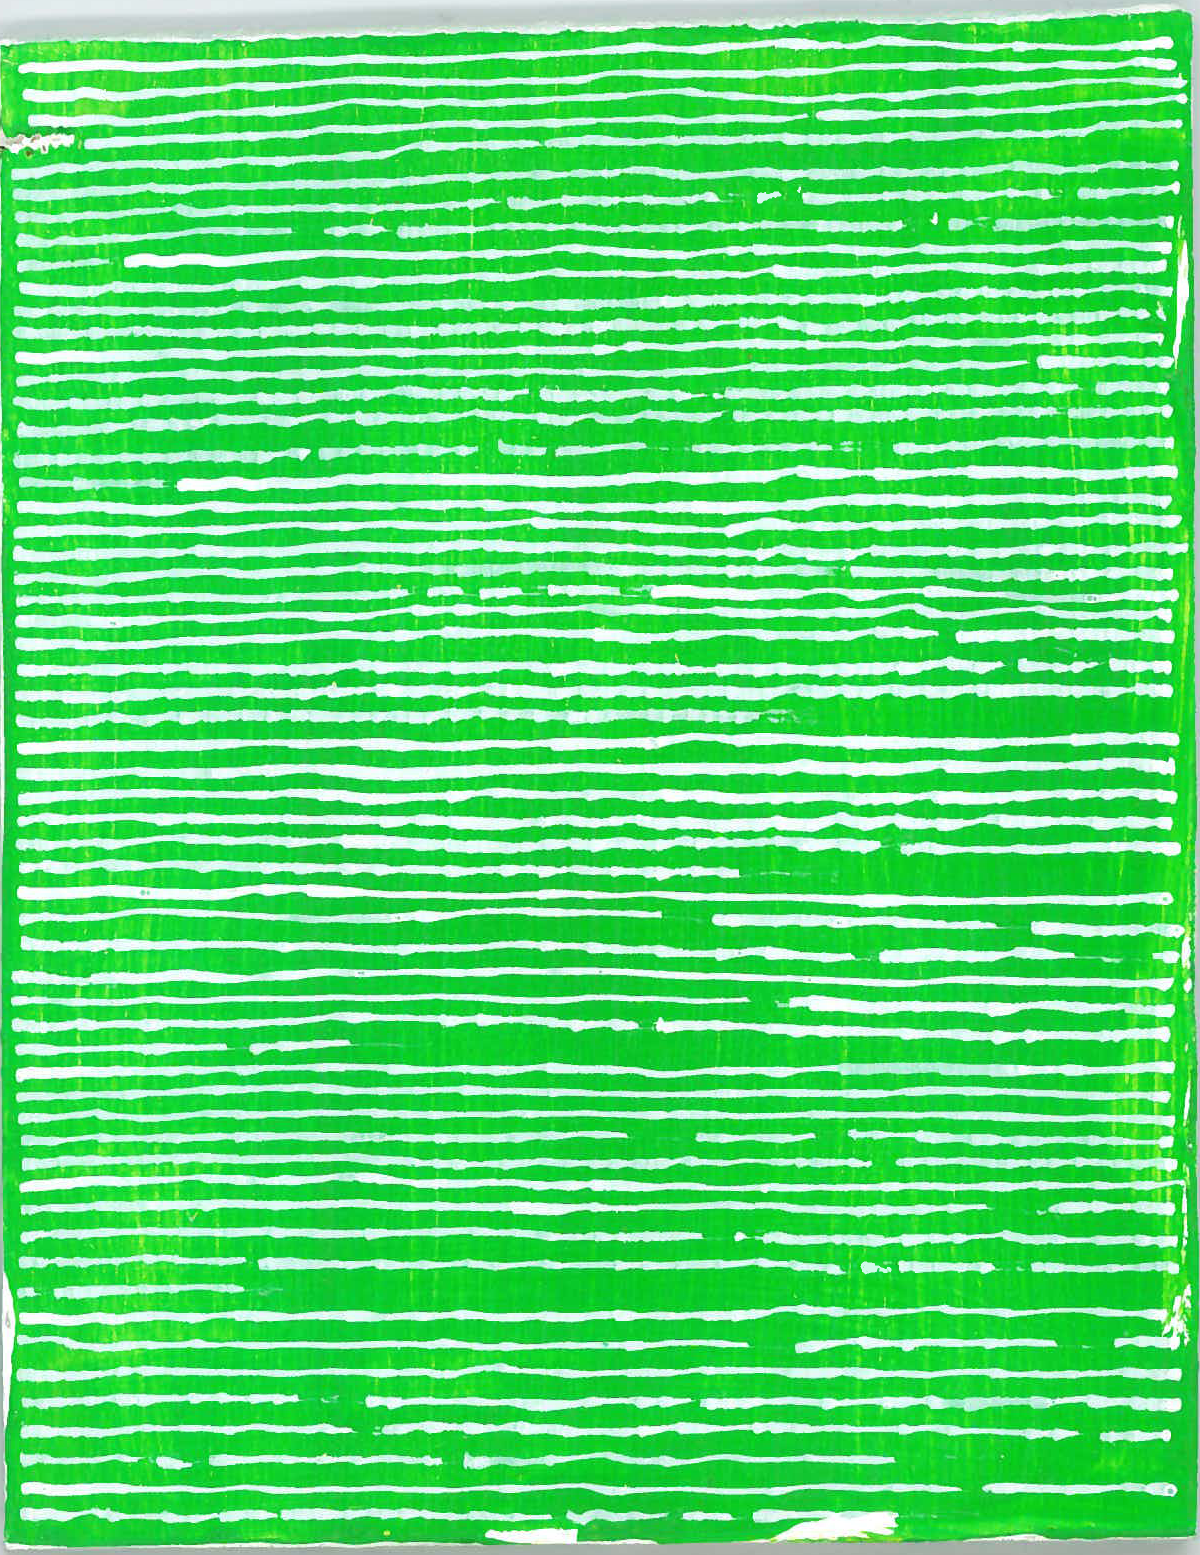 radical warp 12 green drawing by stella untalan